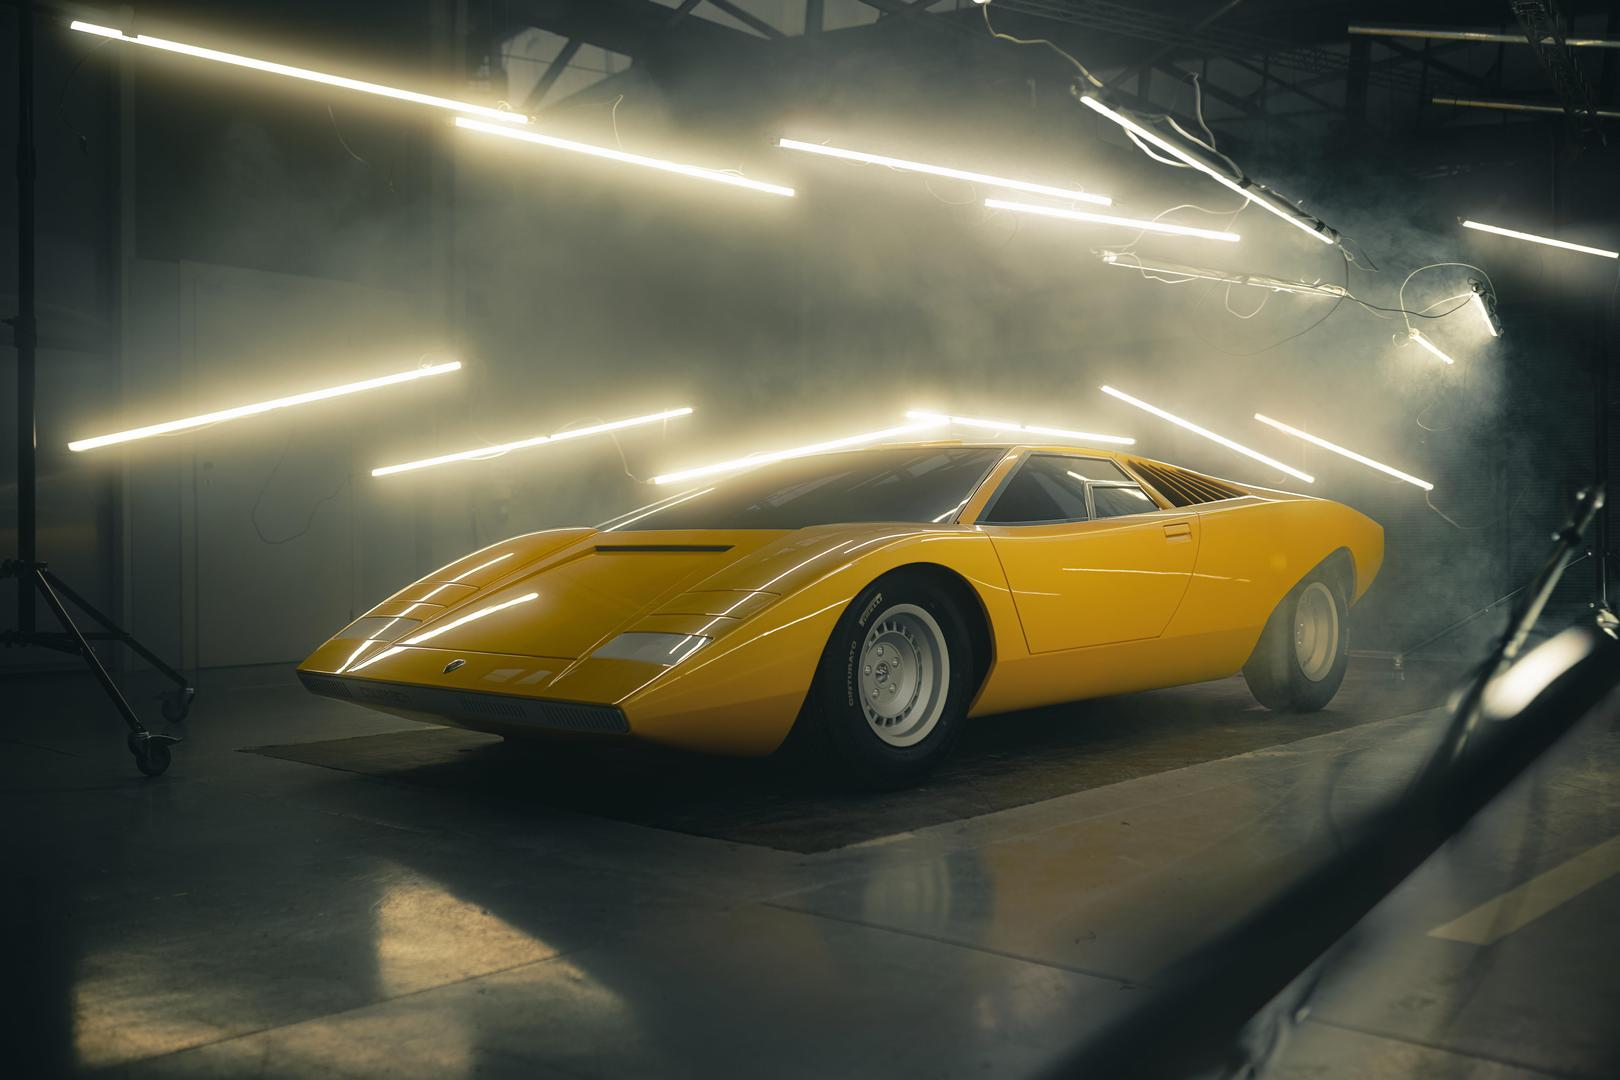 This is the Most Beautiful Lamborghini You Will See Today